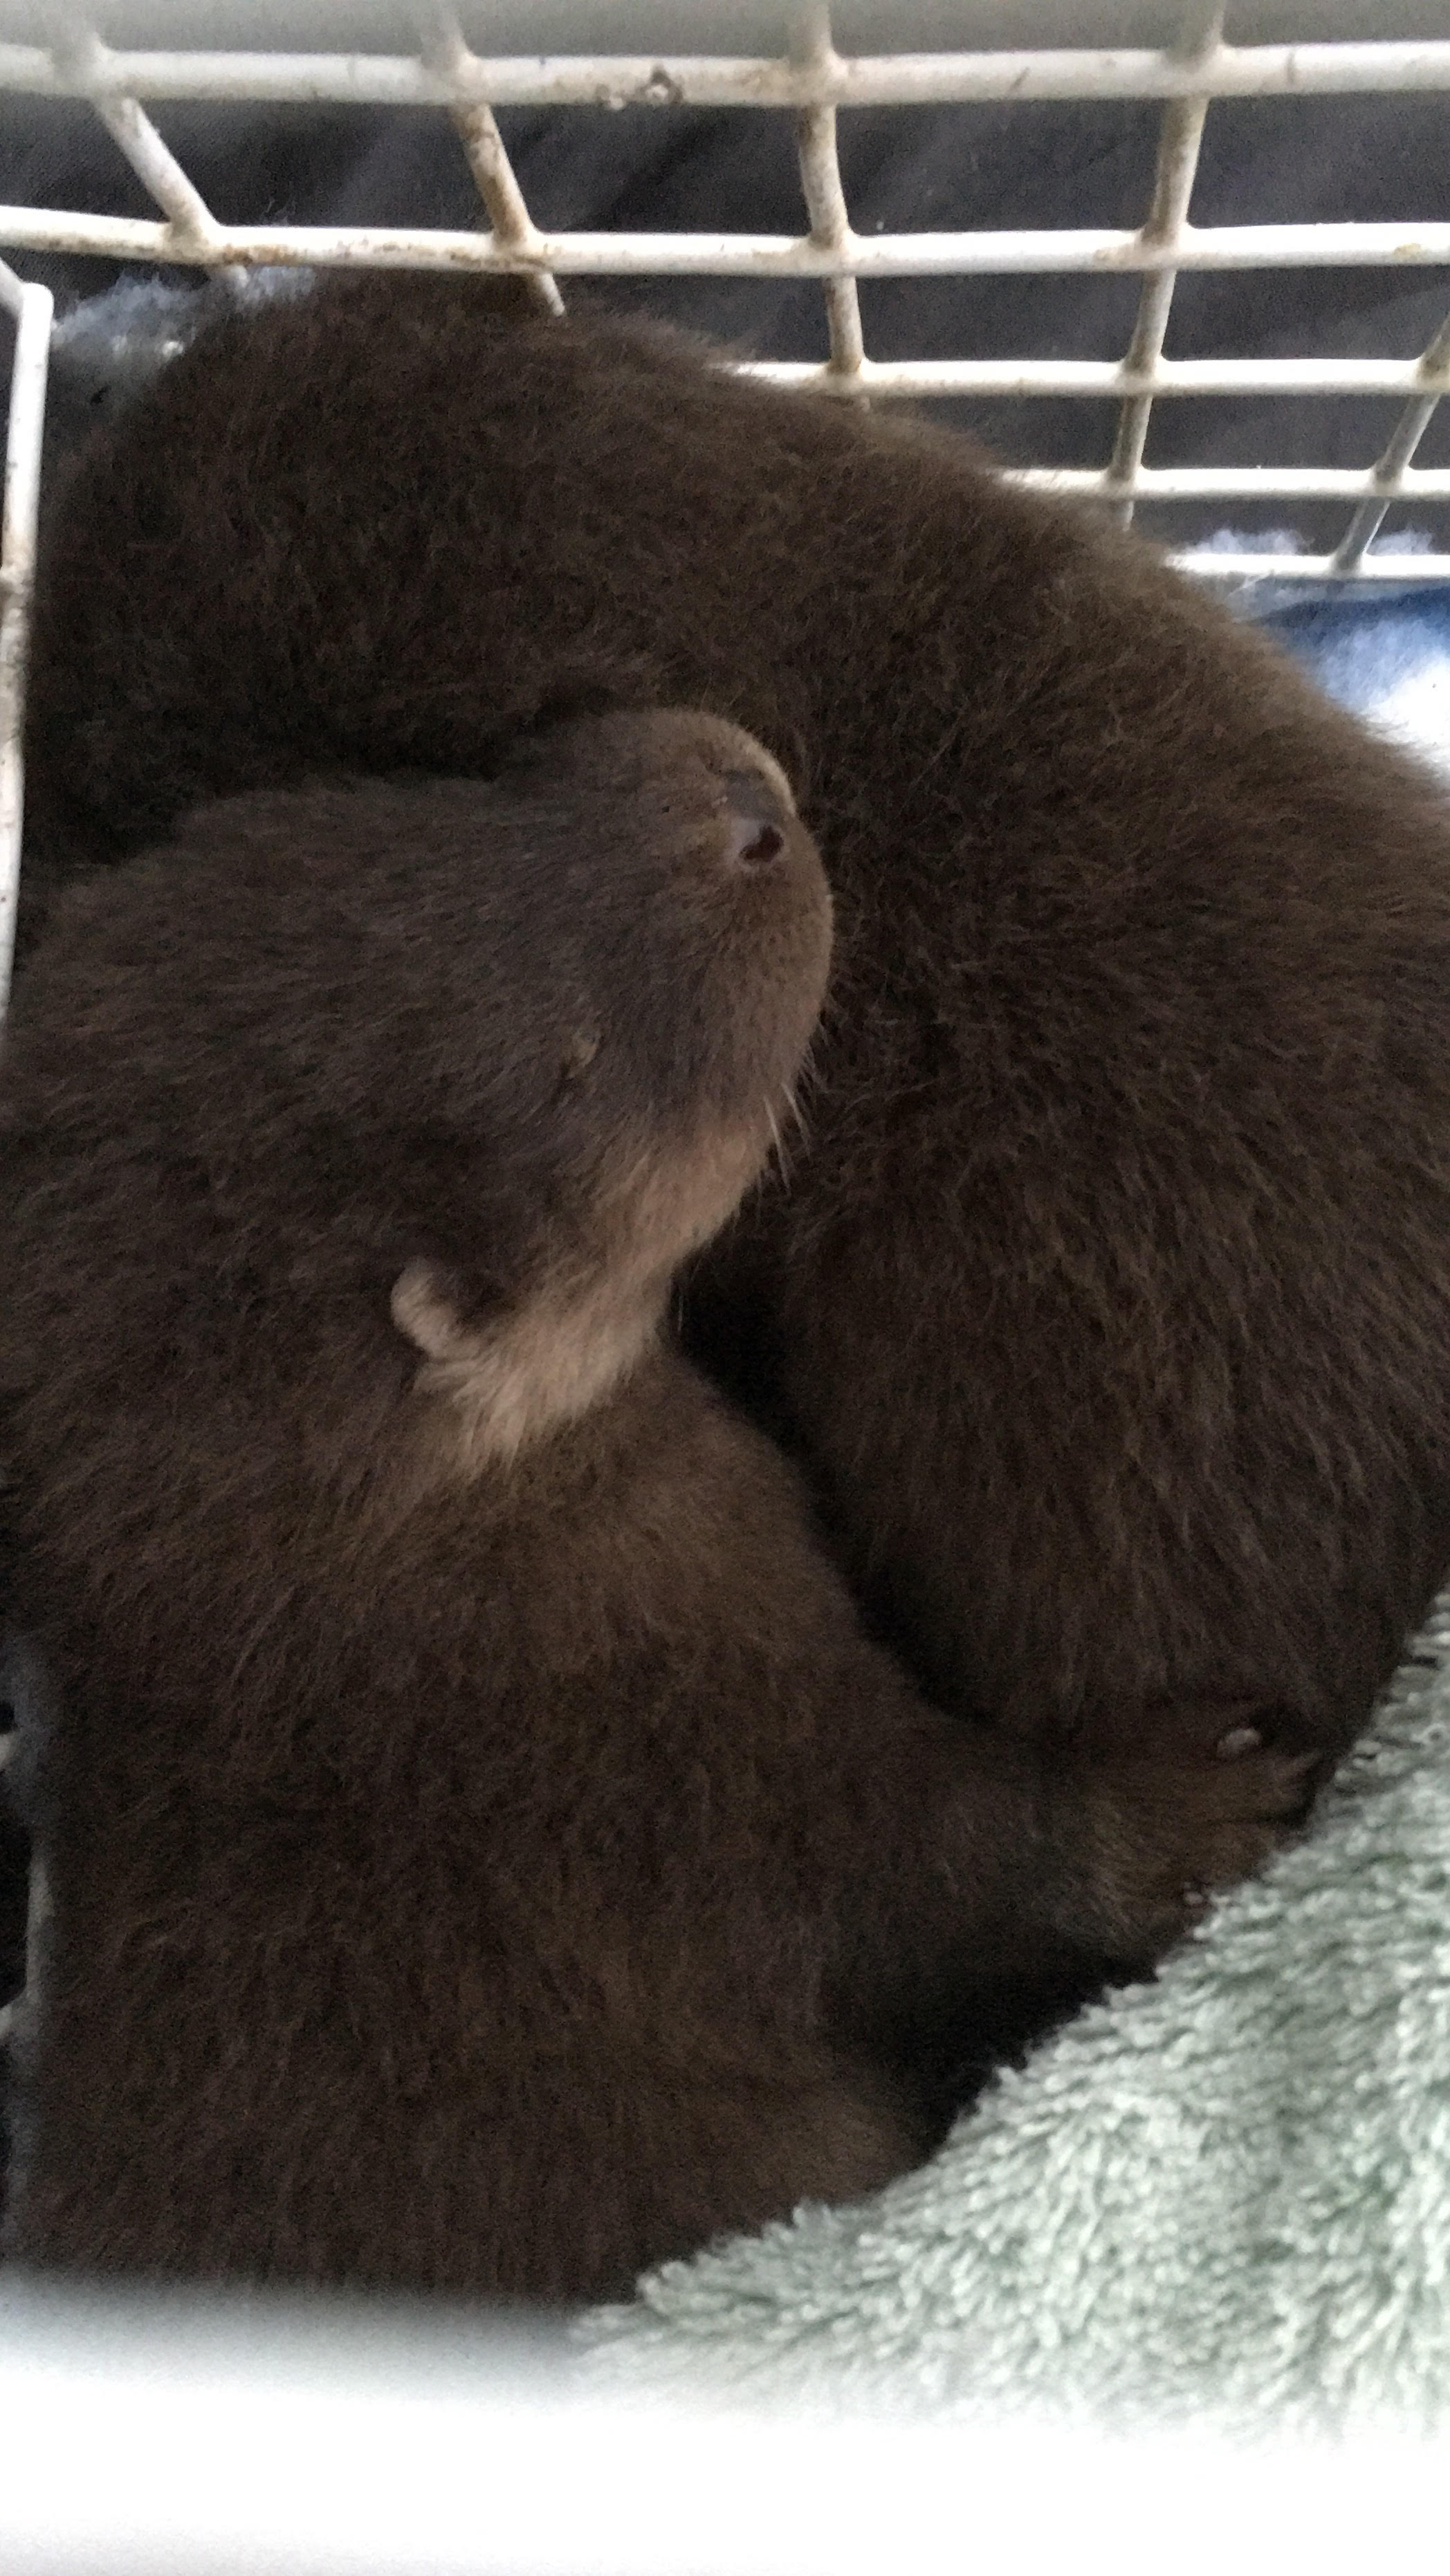 Rescued Suffolk otter pups